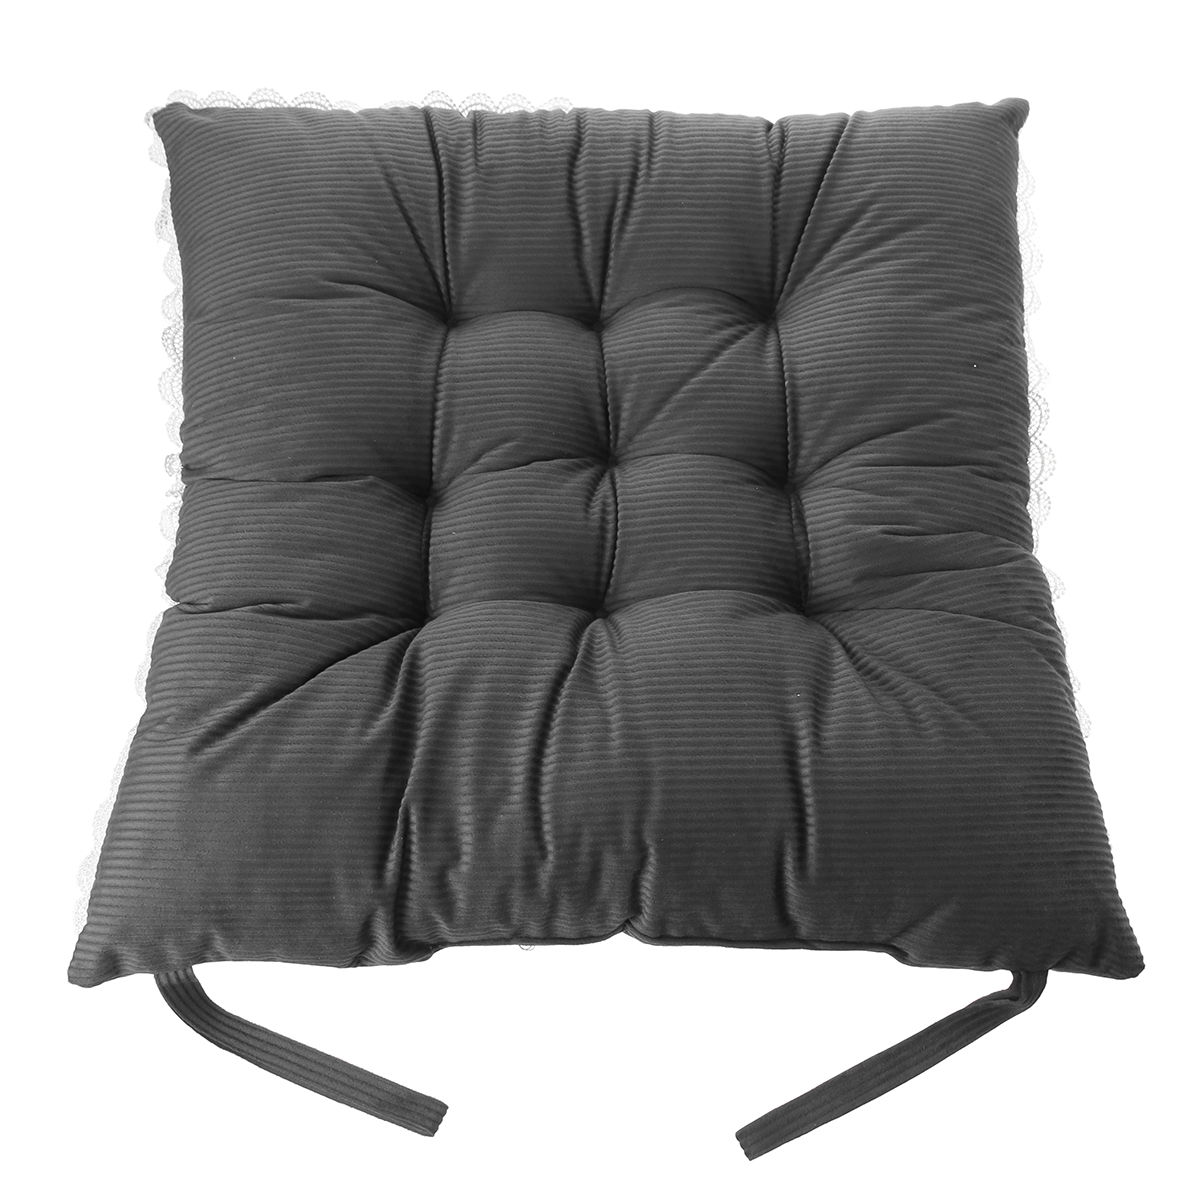 Soft Square Cotton Cushion Soft Comfort Sit Mat Indoor Outdoor Sofa Chair Seat Cushion Pillow Pads Home Office Supplies